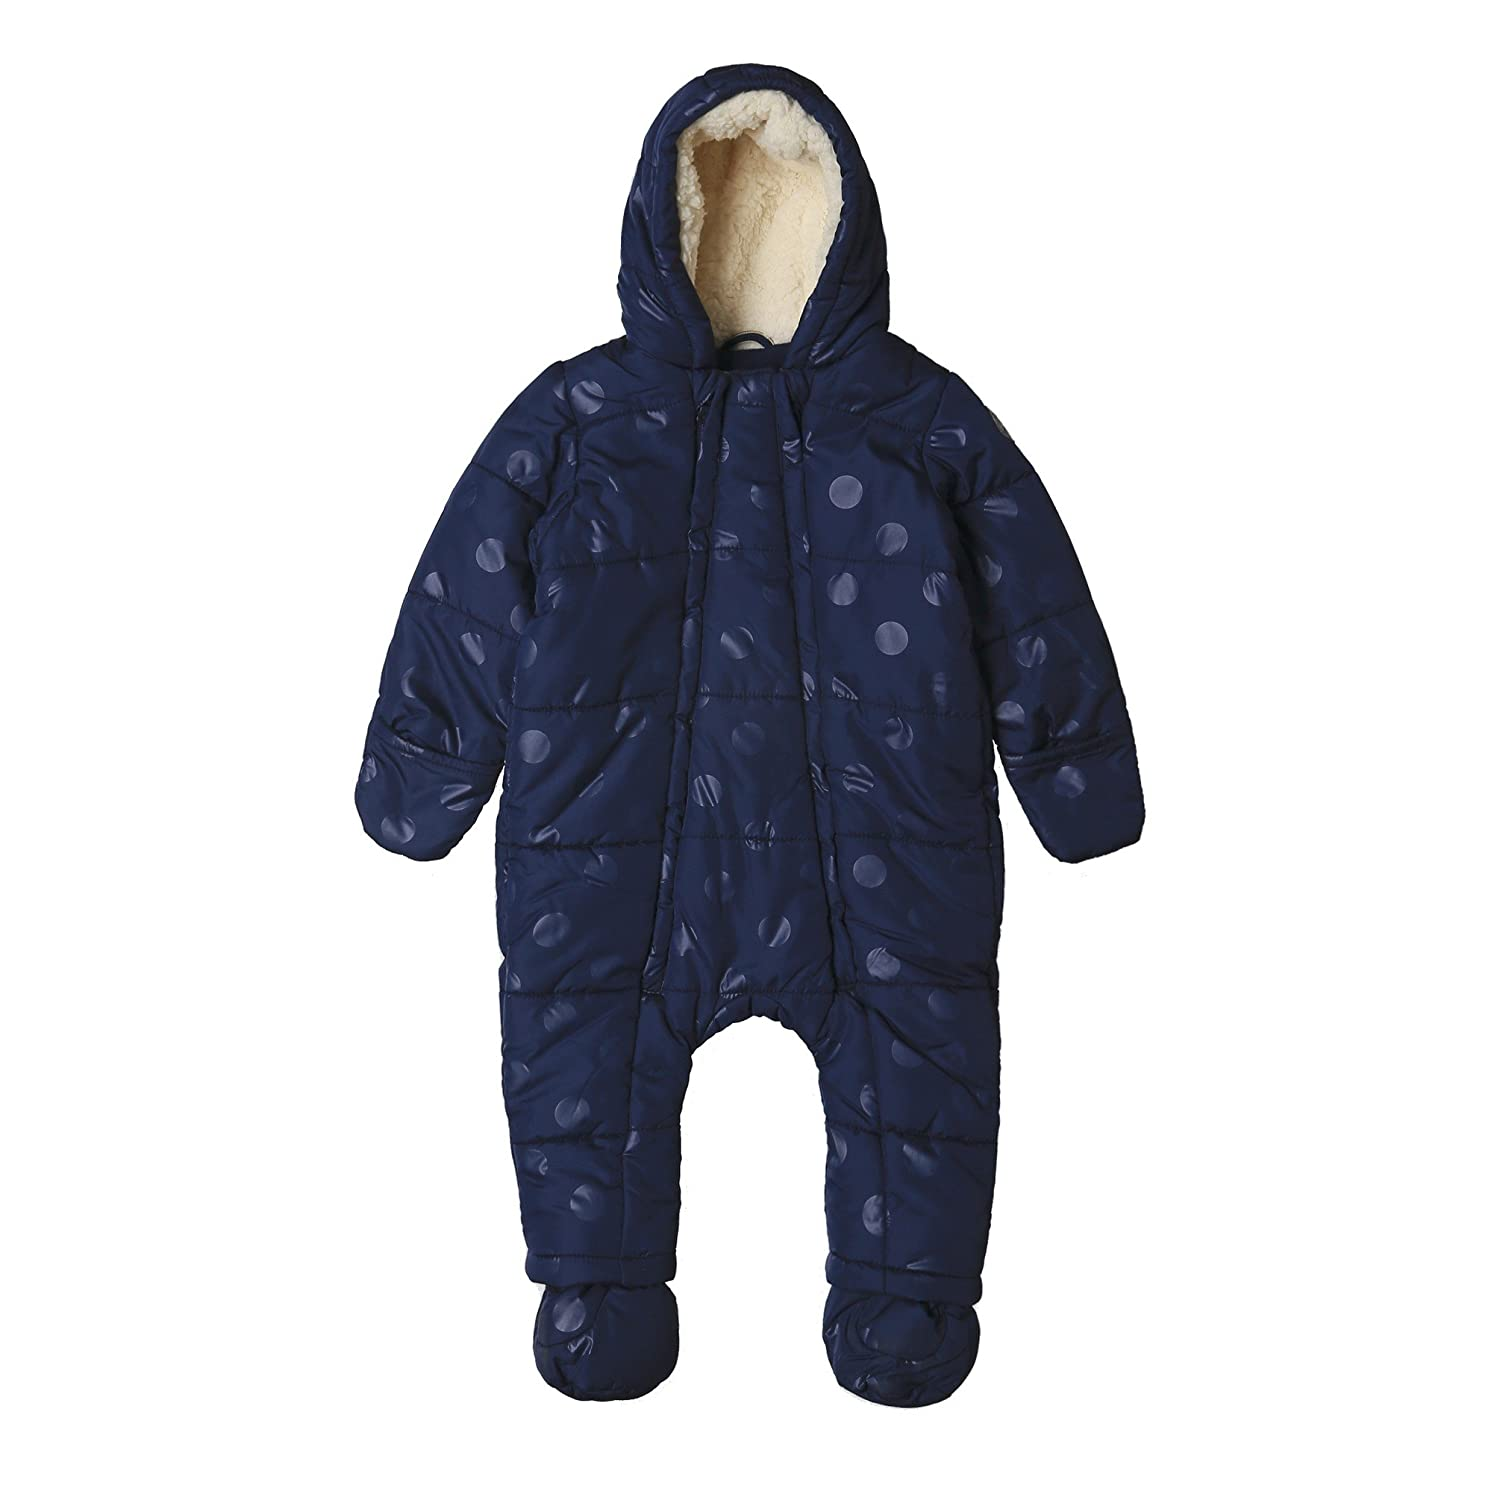 ESPRIT Kids Baby Girls' Snowsuit RK46001